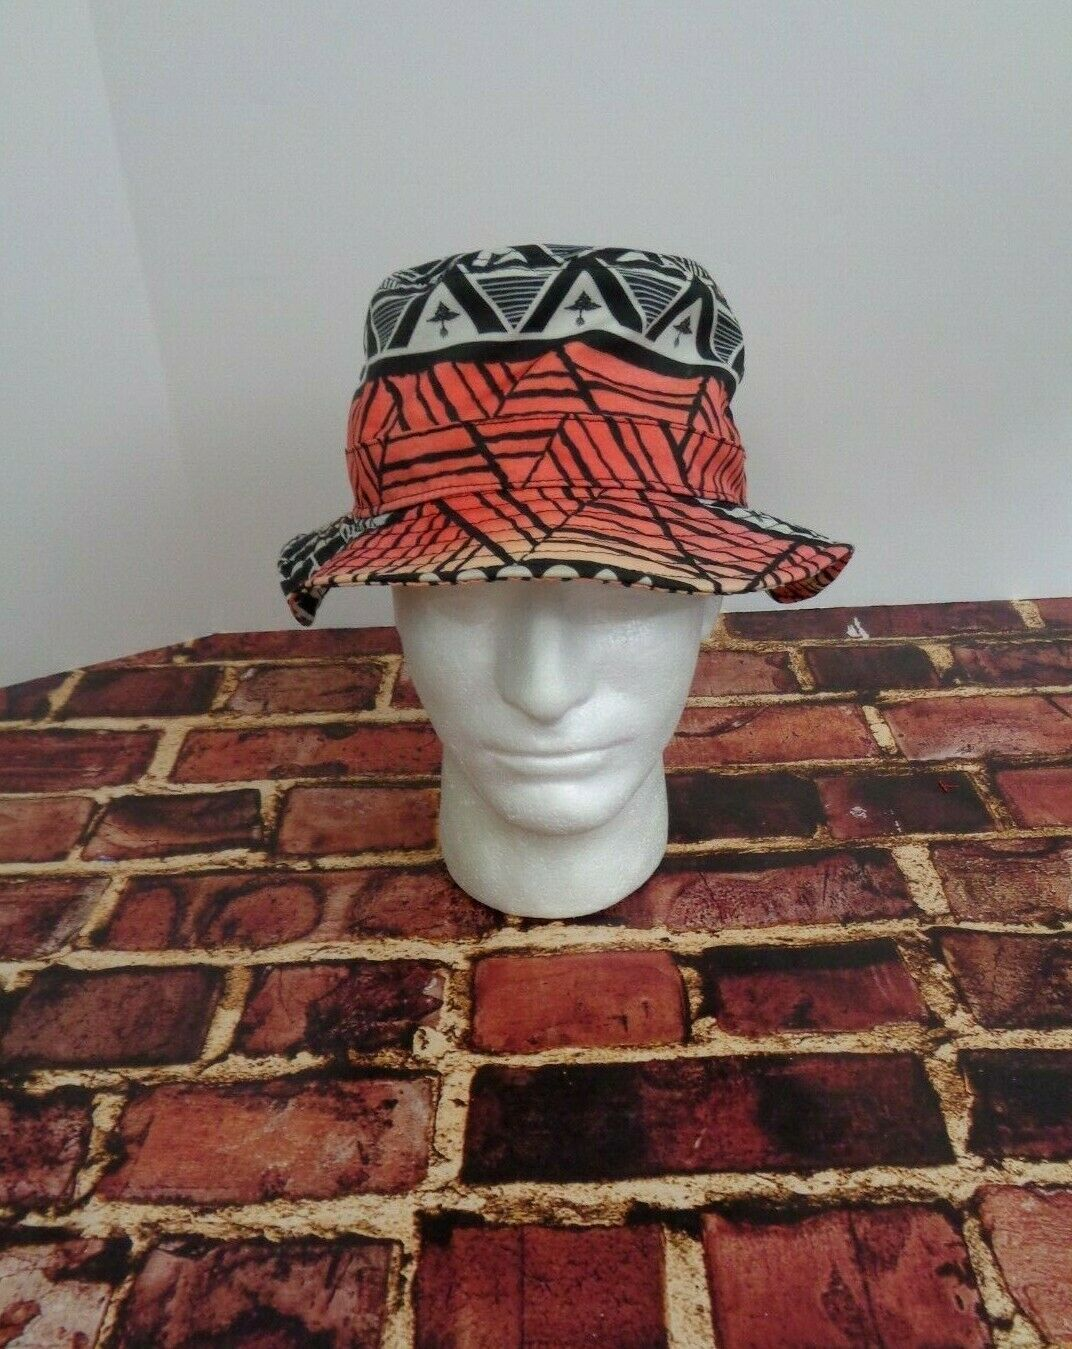 Primary image for LRG Lifted Research Group FLOPPY Cap Hat Sun Fashion Black Orange Red True Heads